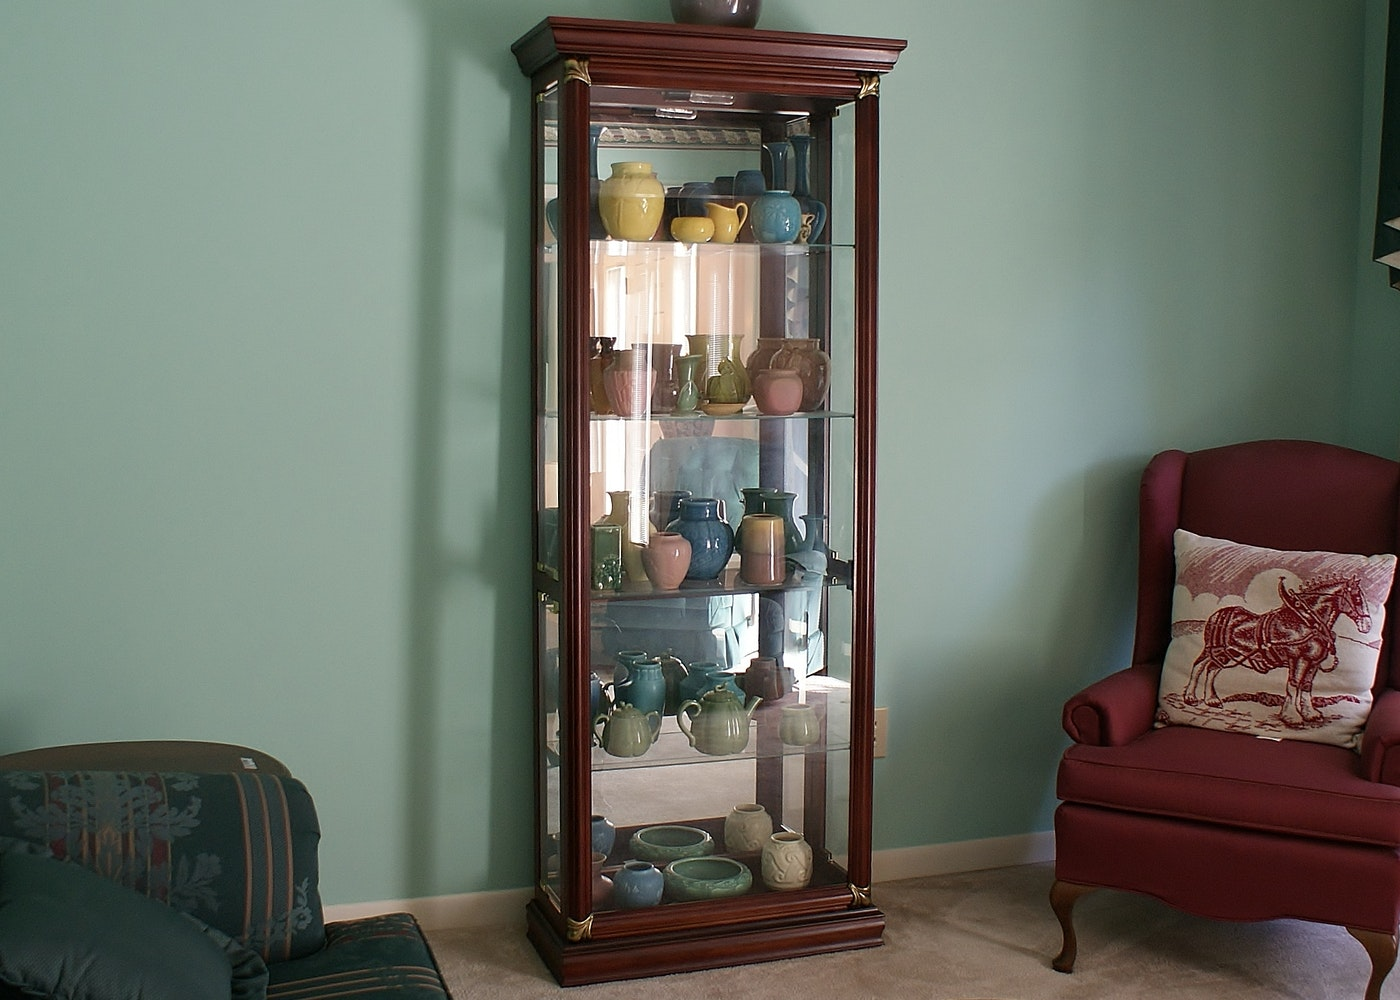 #866845 Mahogany Stain Wood & Glass Lighted Display Cabinet : EBTH with 1400x1000 px of Recommended Mahogany Display Cabinets With Glass Doors 10001400 save image @ avoidforclosure.info